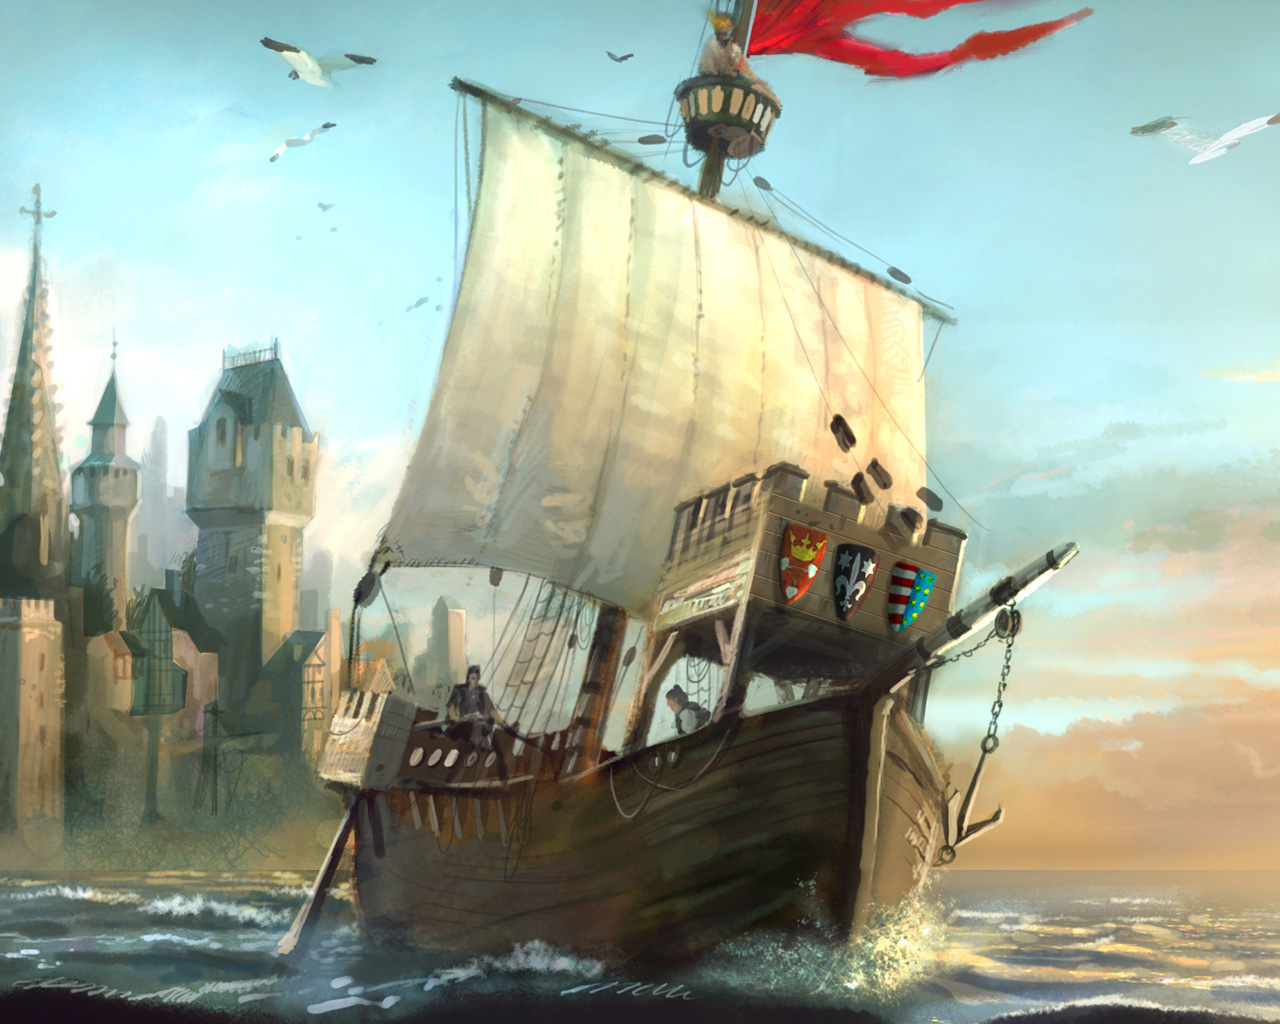 Free Anno 1404 Wallpaper in 1280x1024